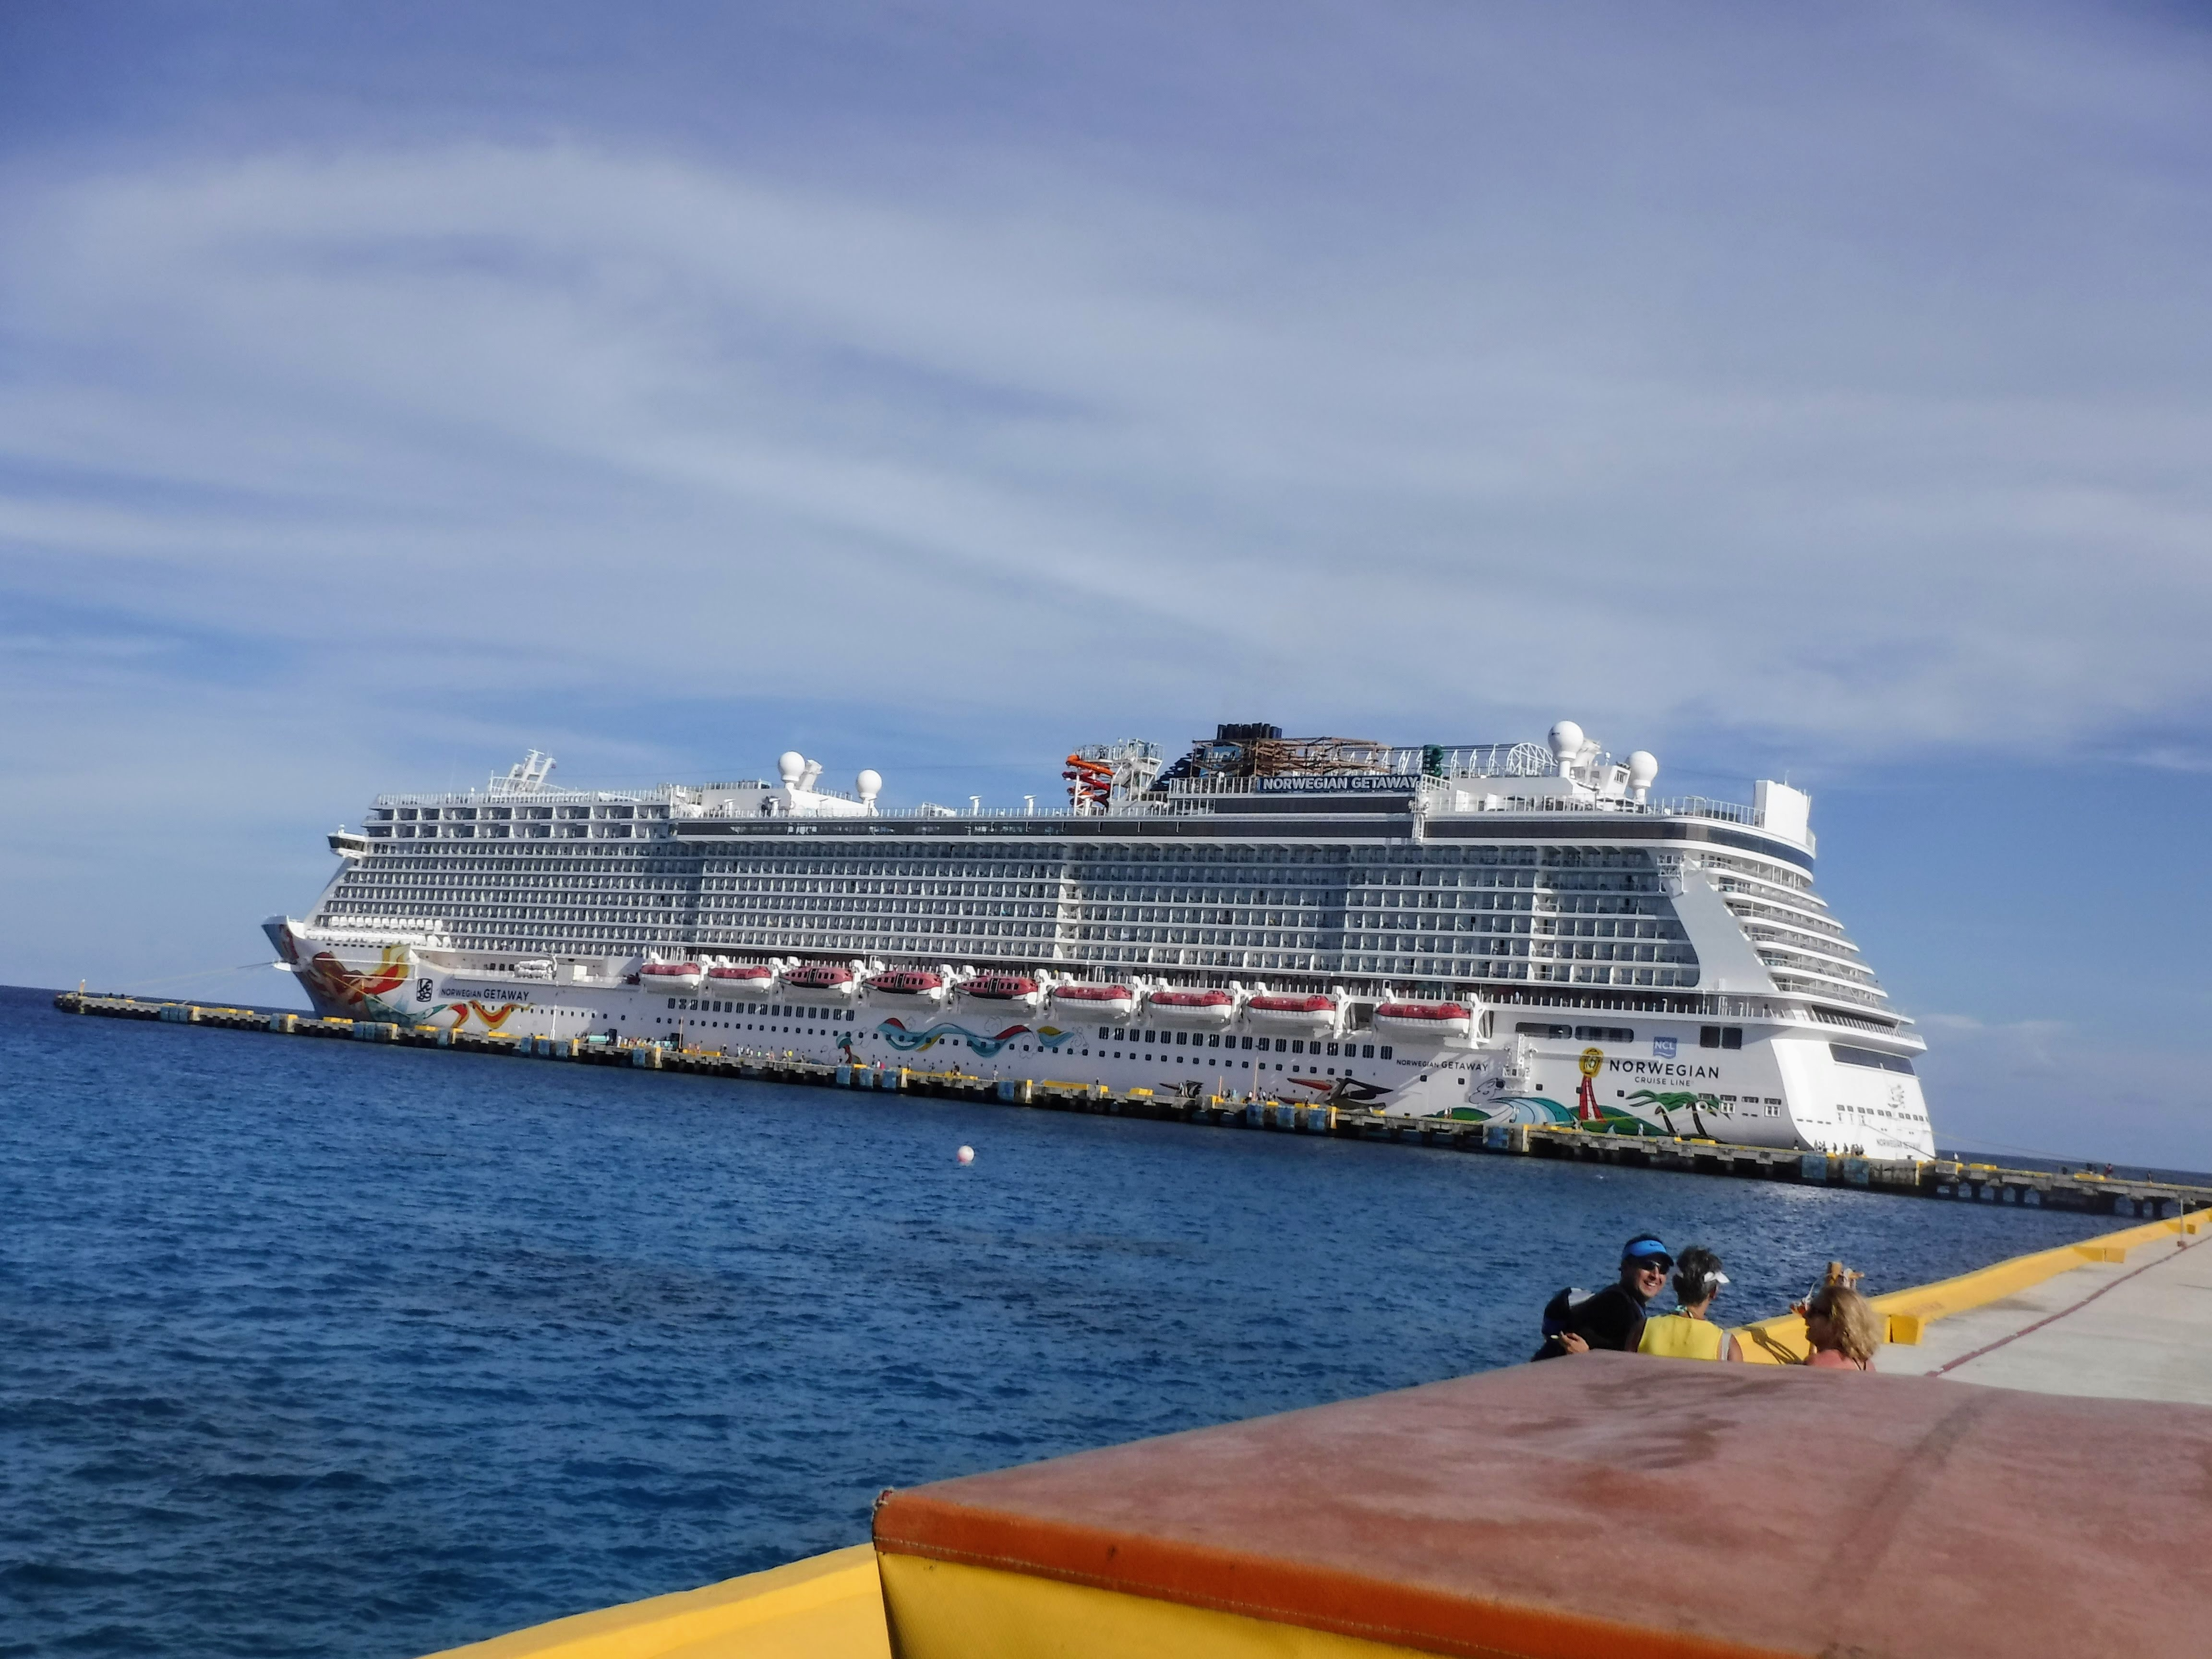 Western Caribbean Cruise on Norwegian Getaway